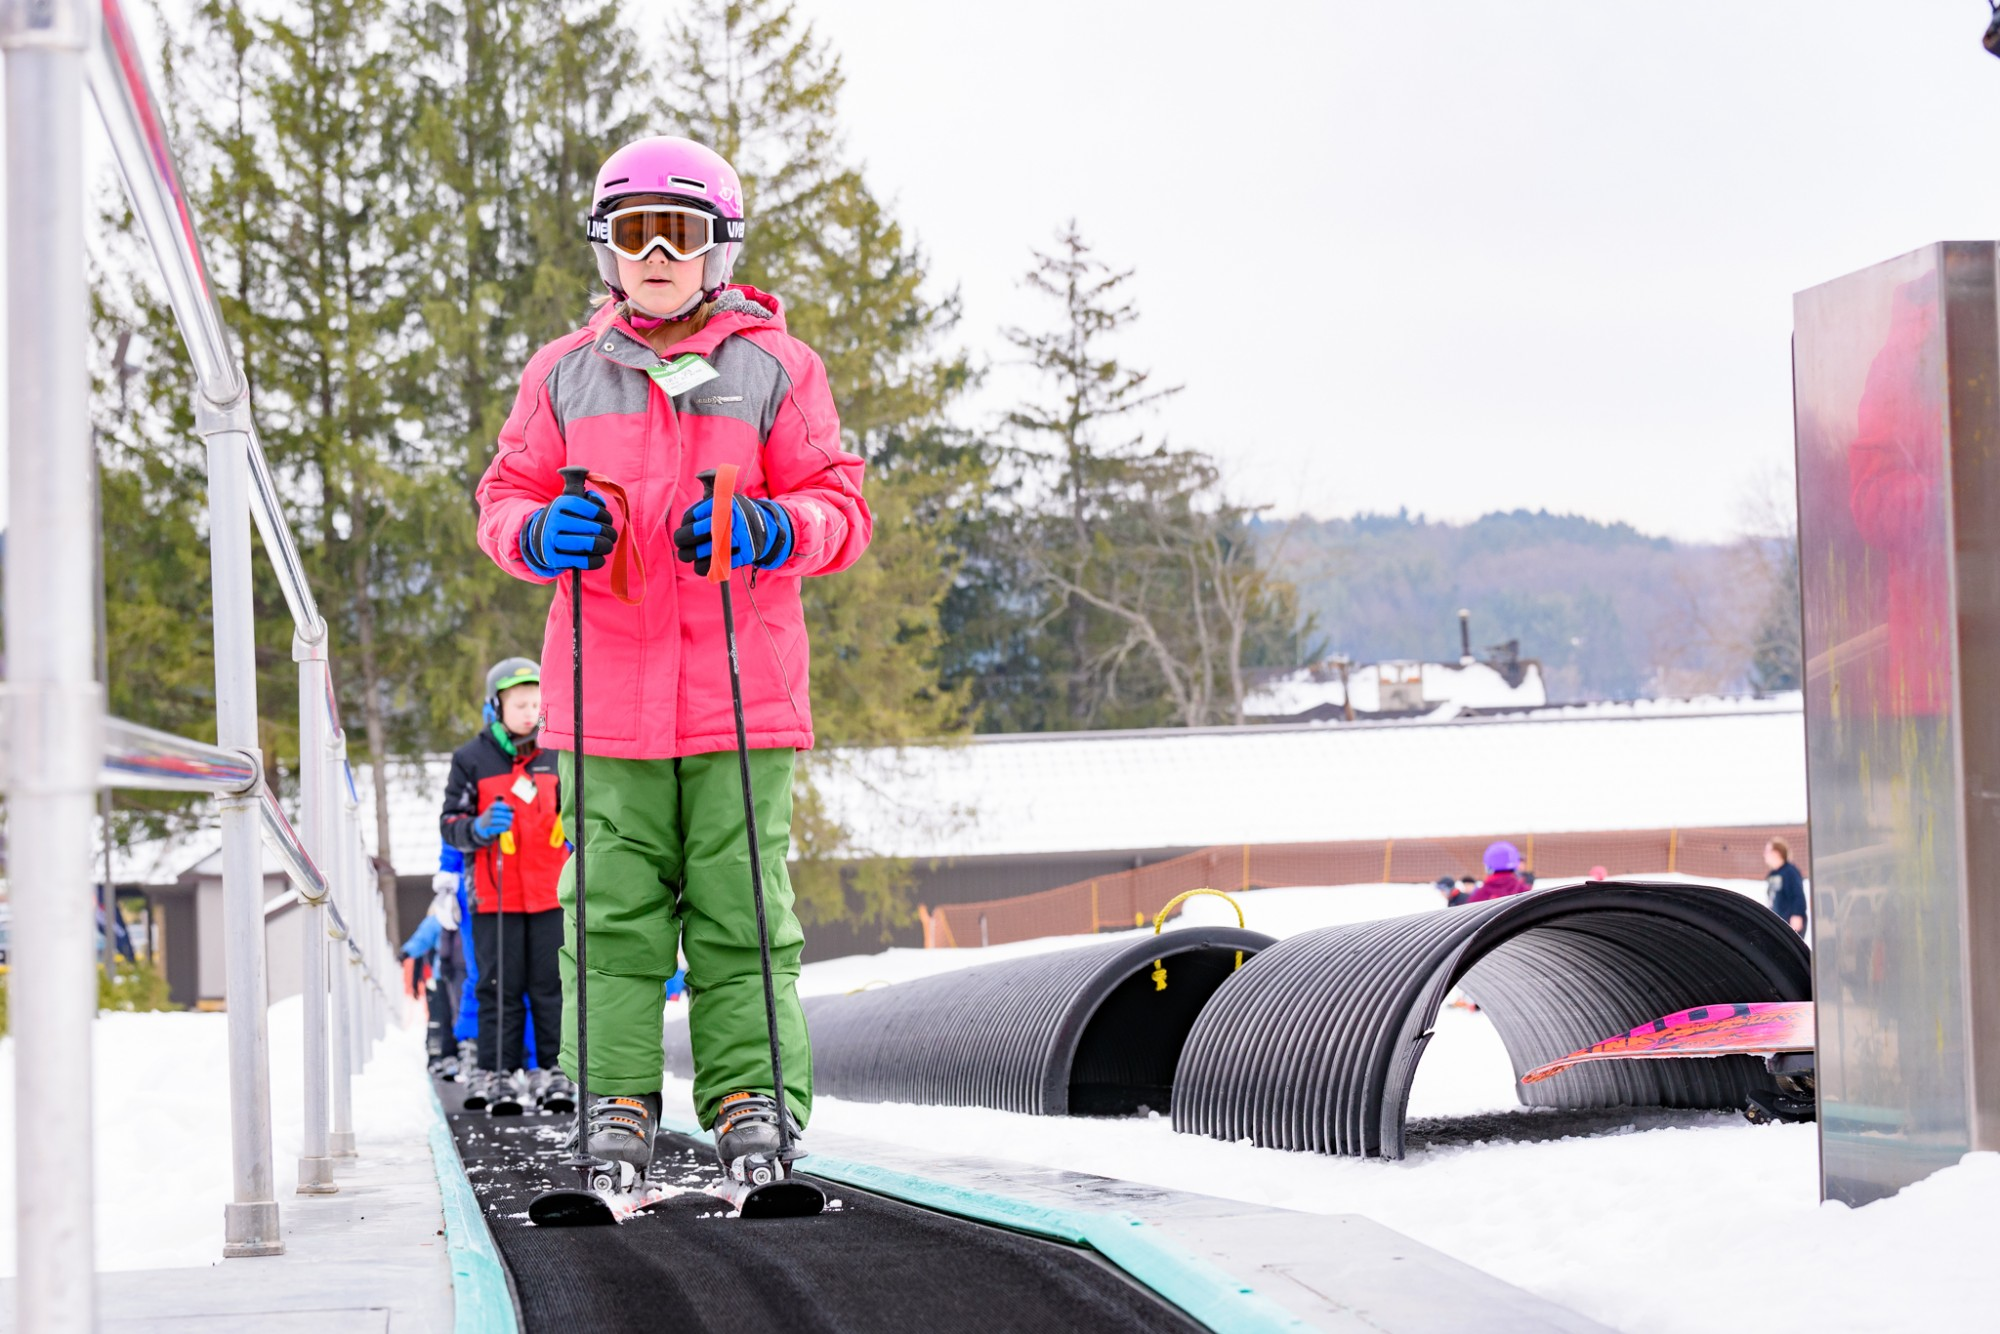 Young Skier on Conveyor Carpet Lift Ride at Snow Trails